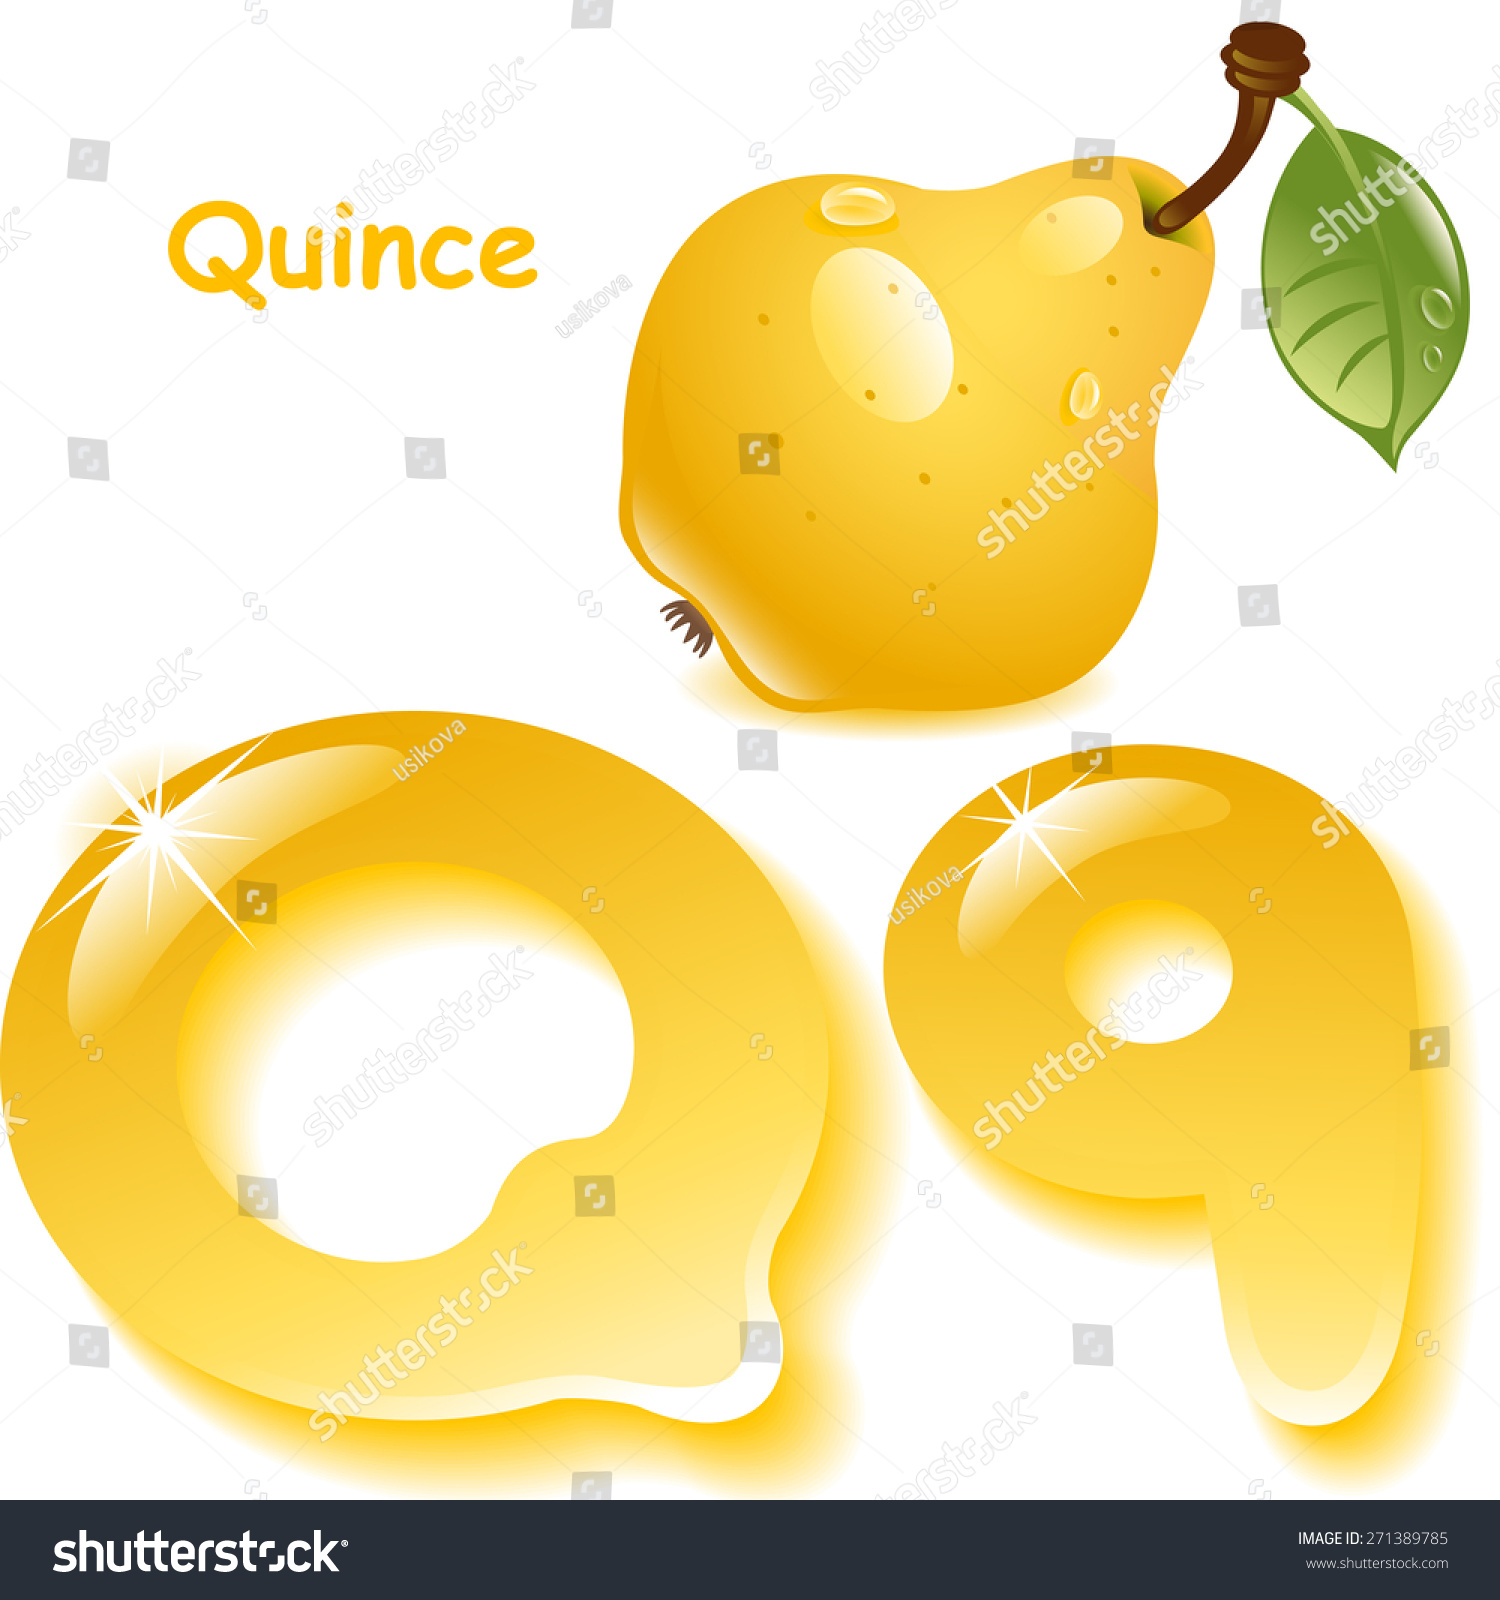 English capital and uppercase letter Q, stylized color of quince juice.  yellow